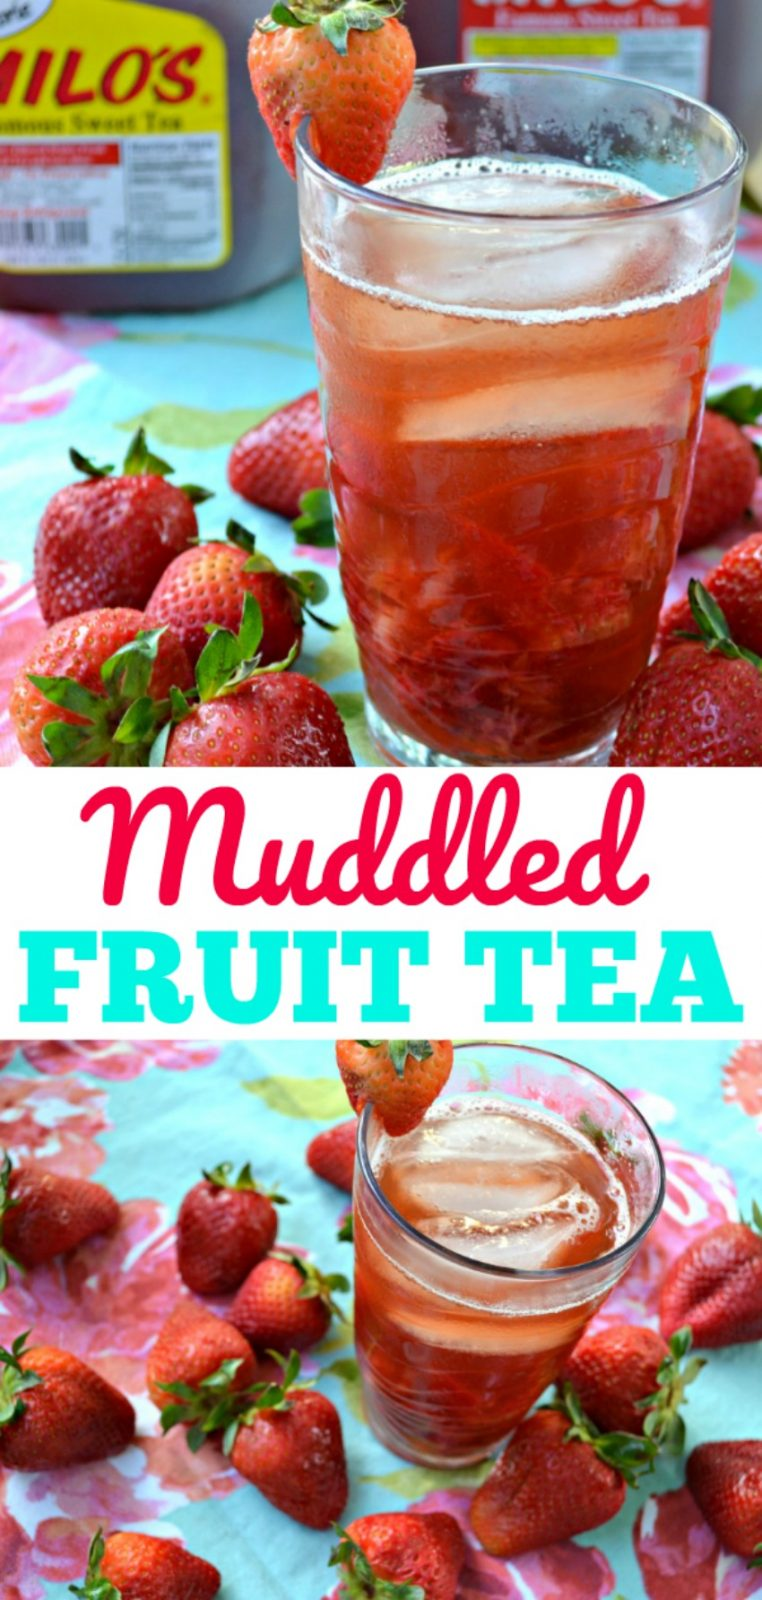 Muddled Fruit Tea